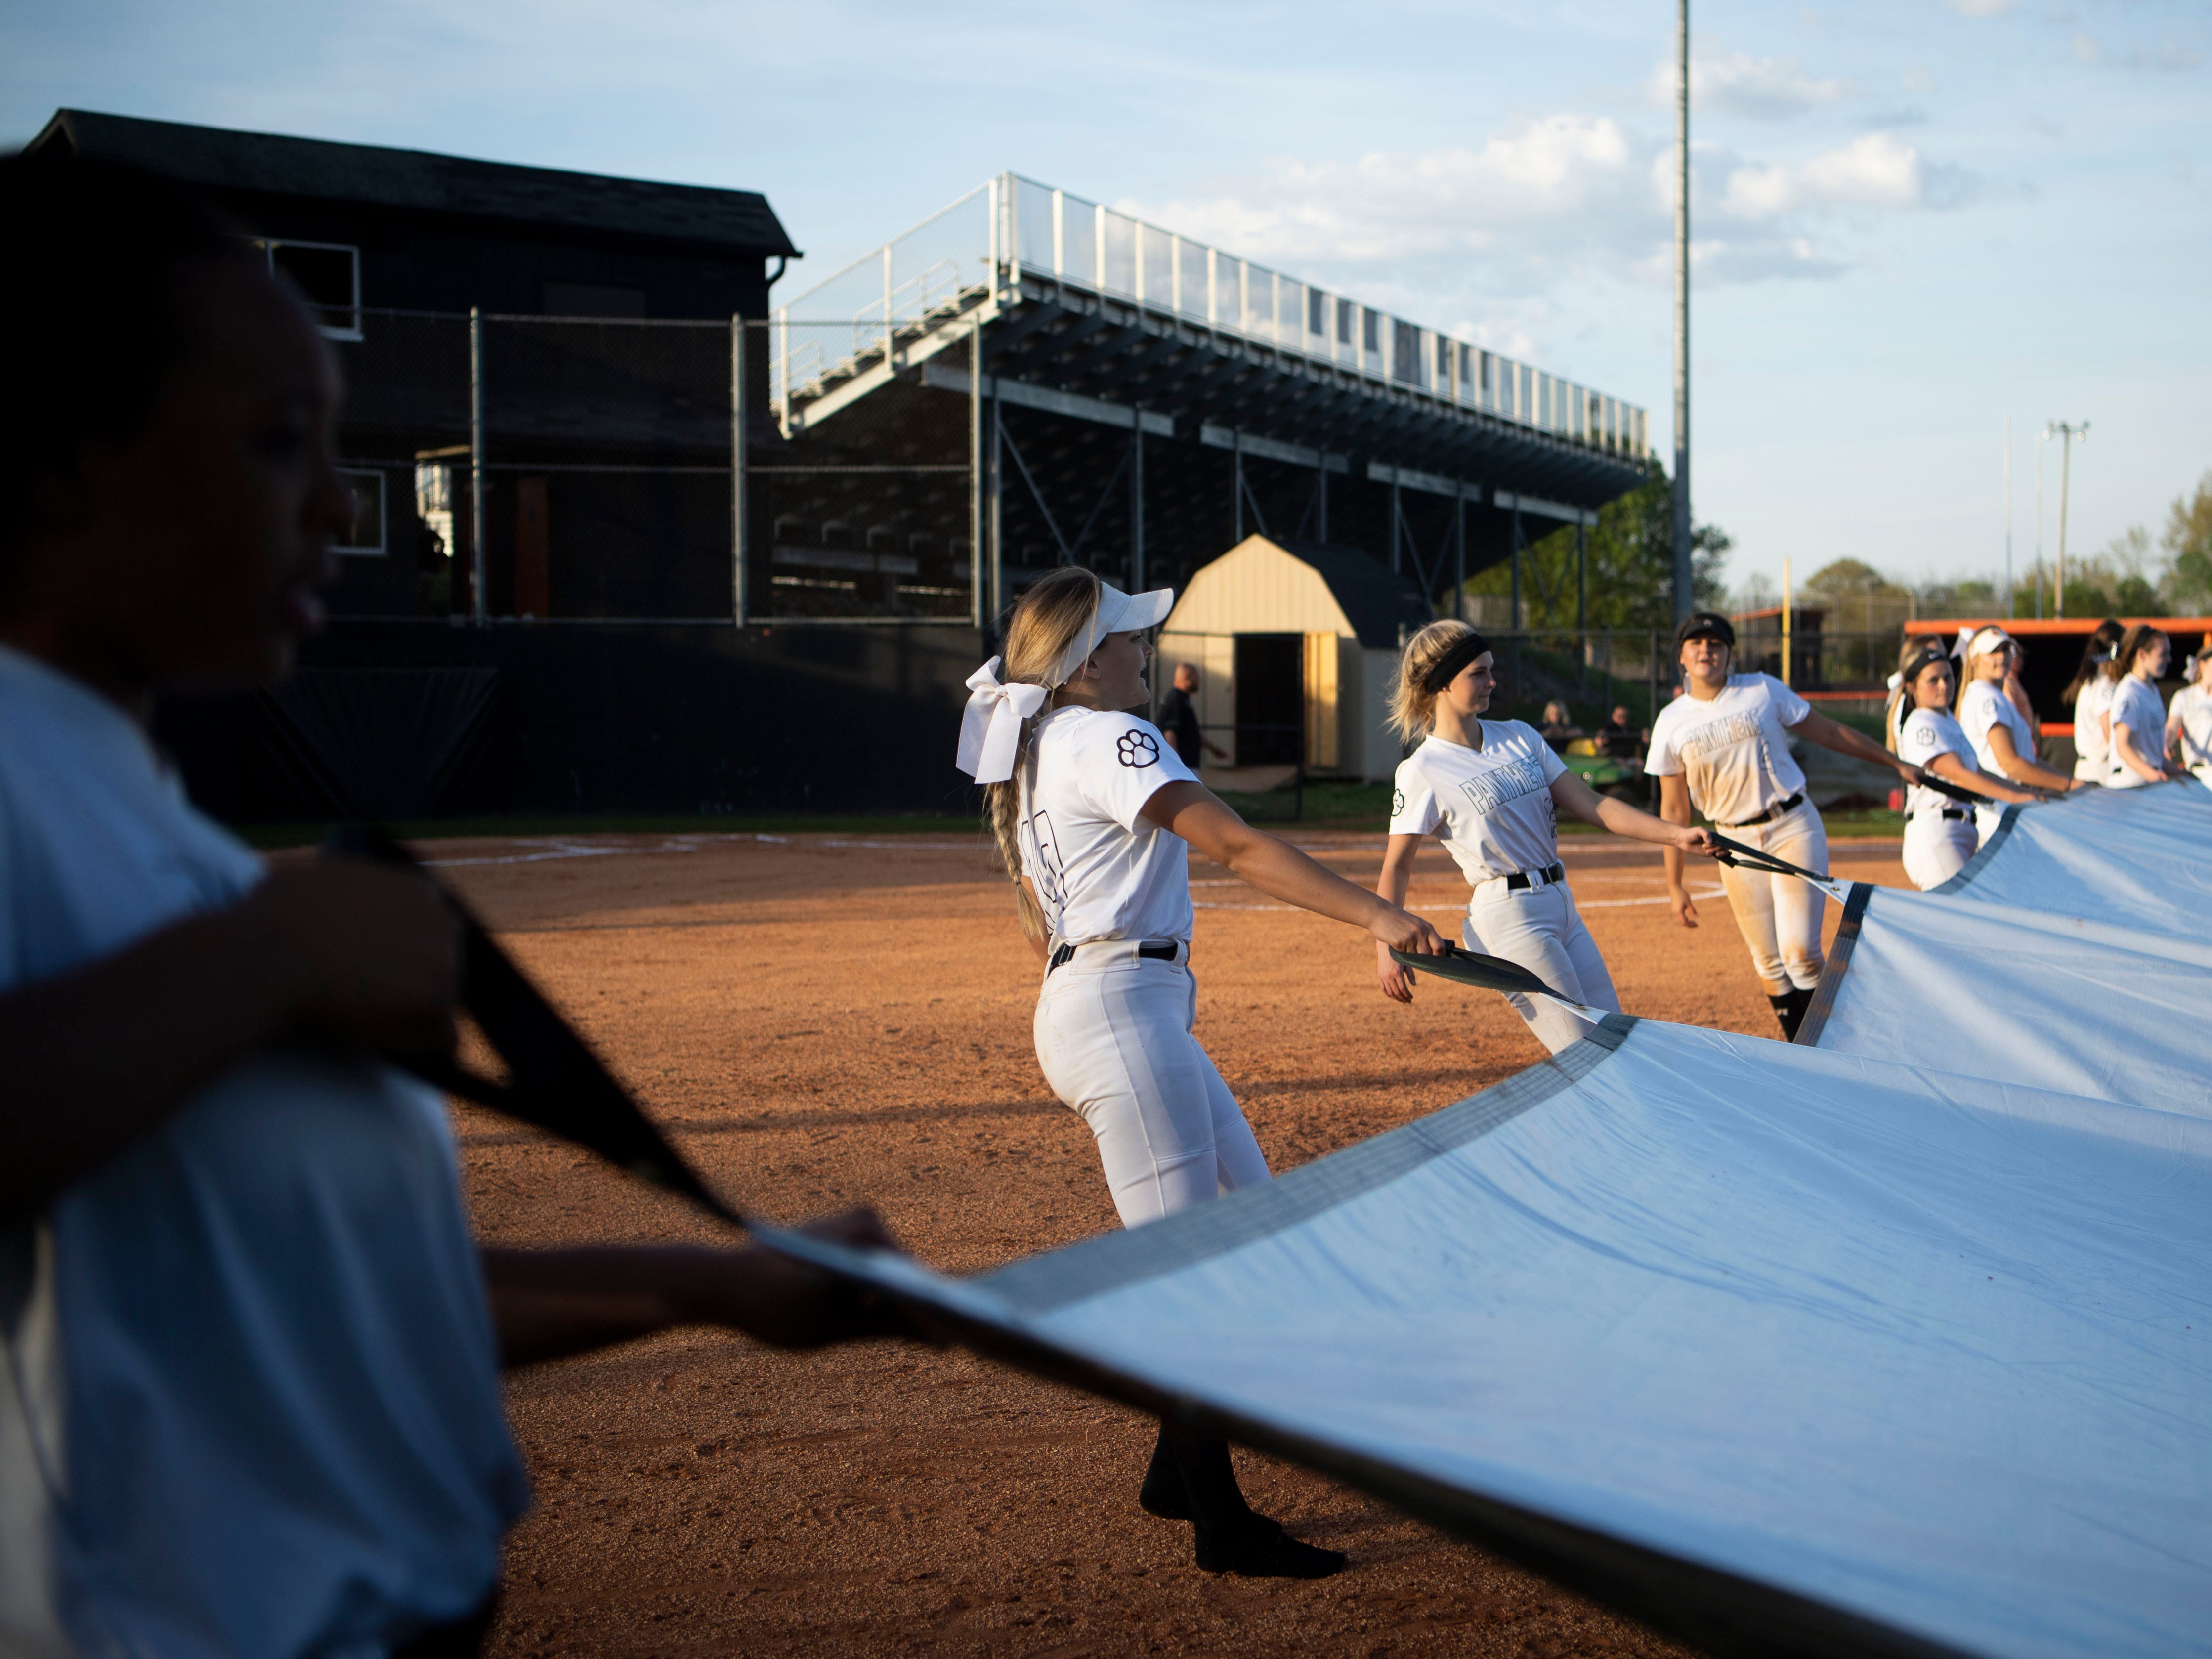 Powell players work together to cover their infield after their game against Central on Thursday, April 11, 2019. It was the team's first game at home after rains destroyed the field earlier in the year.